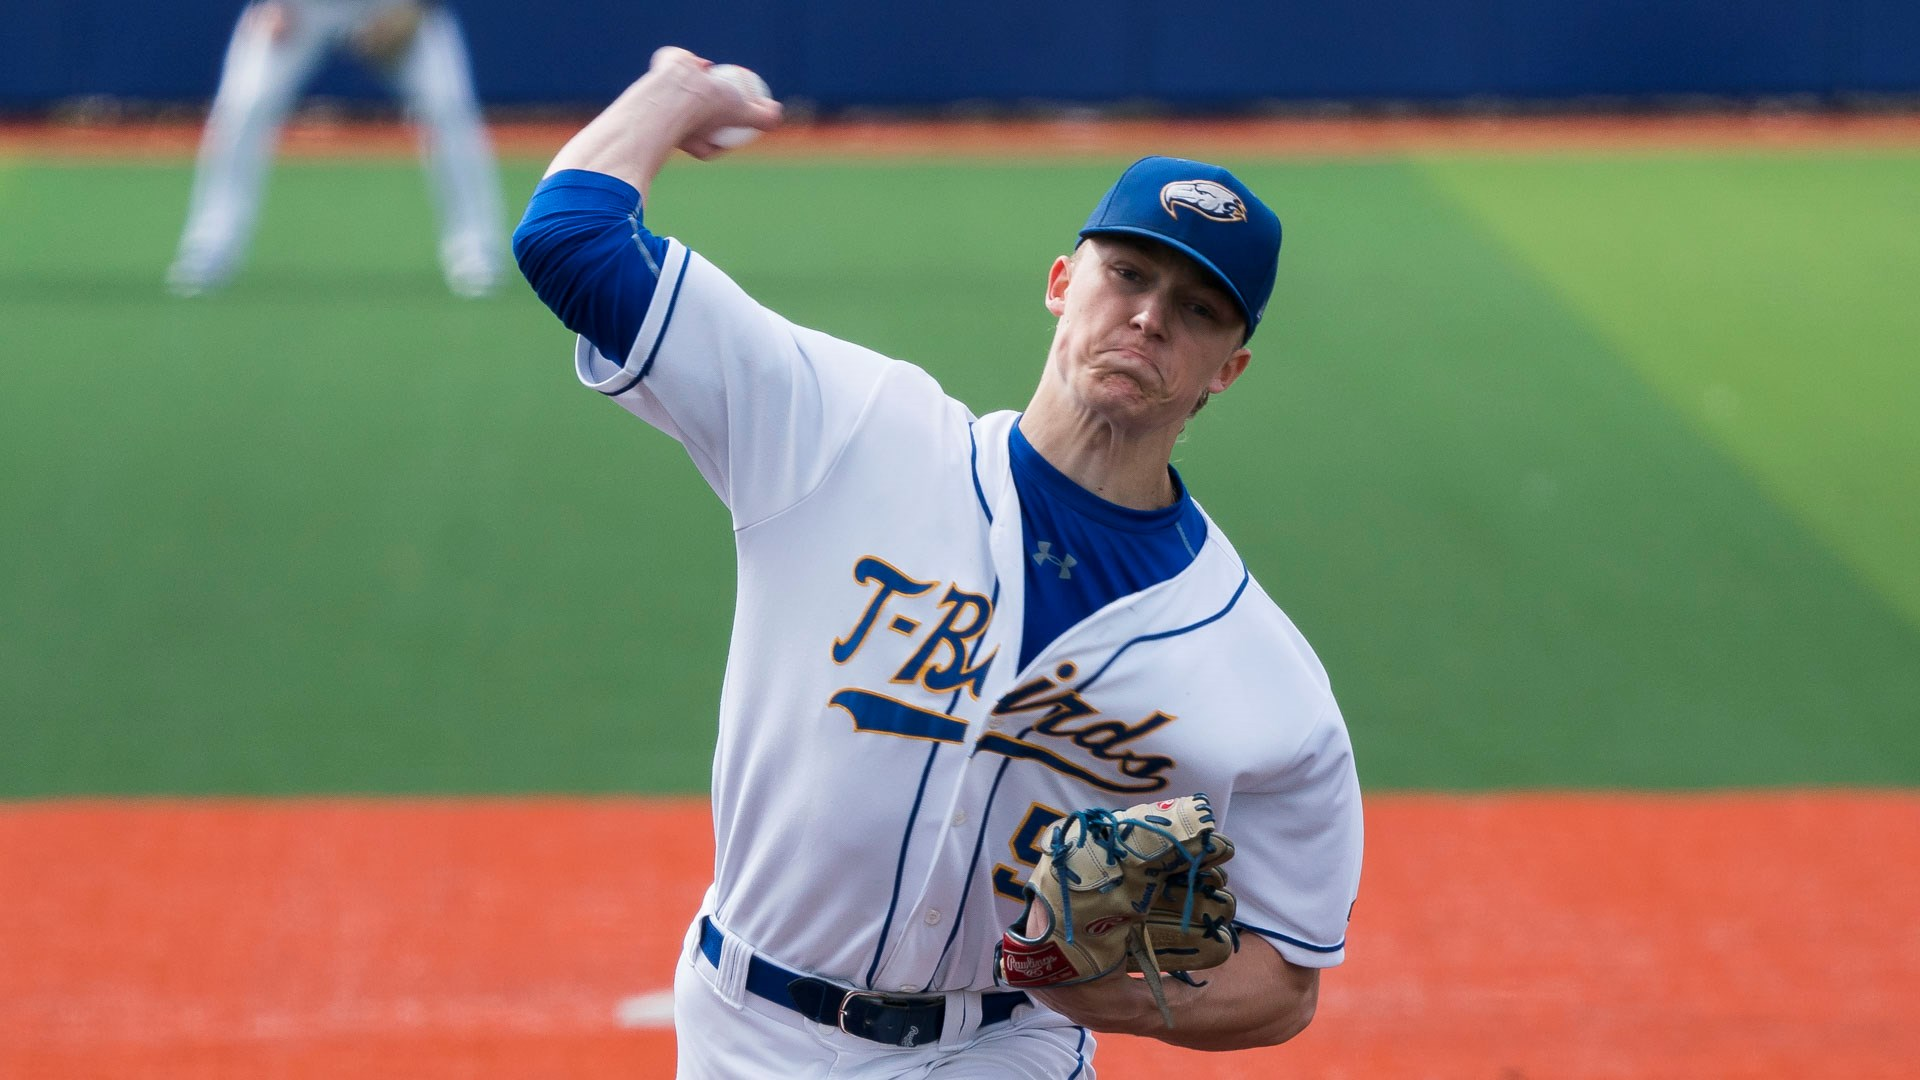 North Shore Twins grad James Bradwell (Gibsons, BC) allowed just one run over 5 1/3 innings in his his start for the UBC Thunderbirds this week.. In that start, he surrendered two hits, issued two free passes and punched out eight. Photo: Rich Lam/UBC Thunderbirds